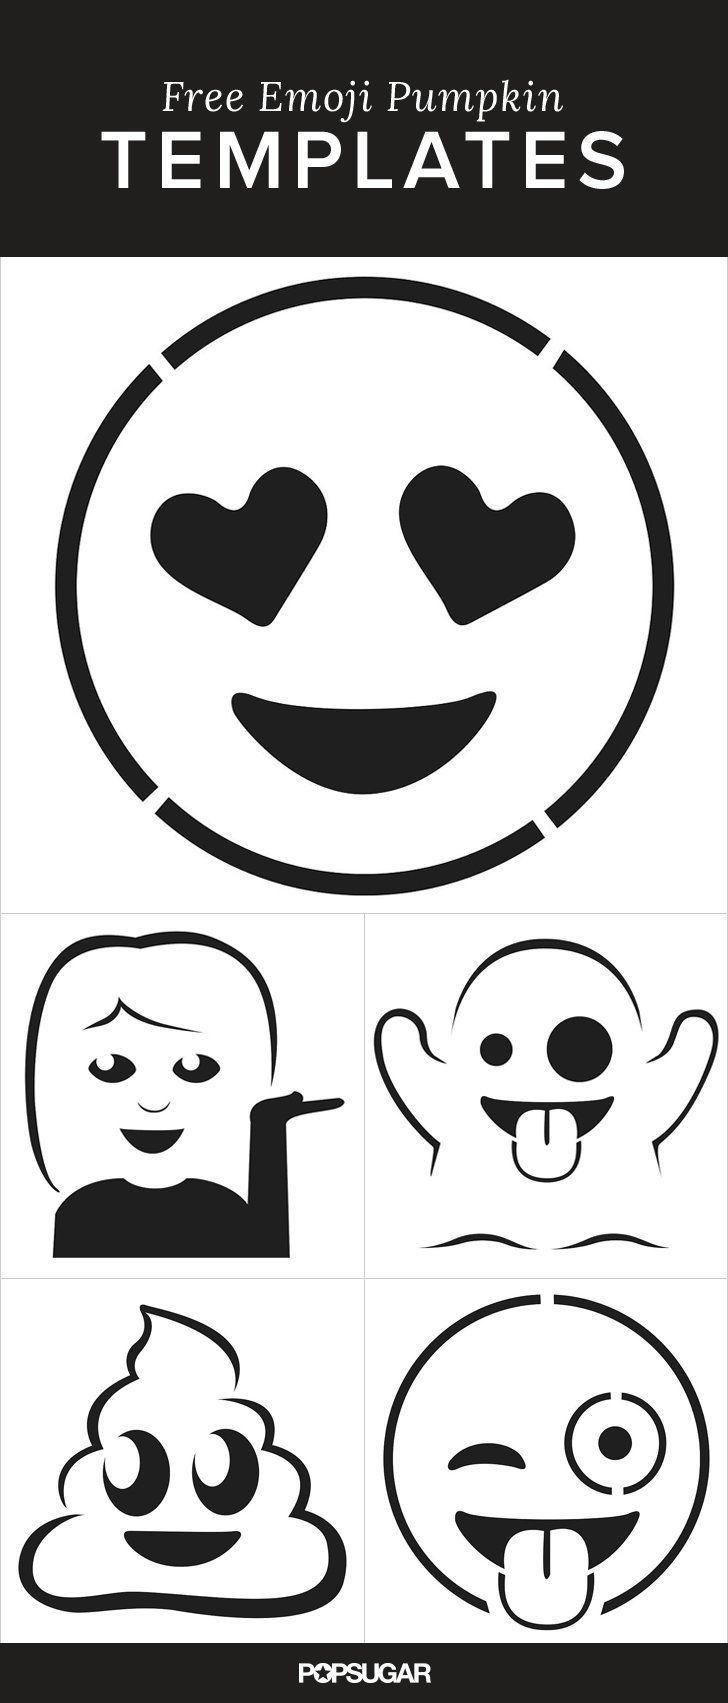 Here Are the Emoji Pumpkin Templates of Your Dreams | Emoji ...